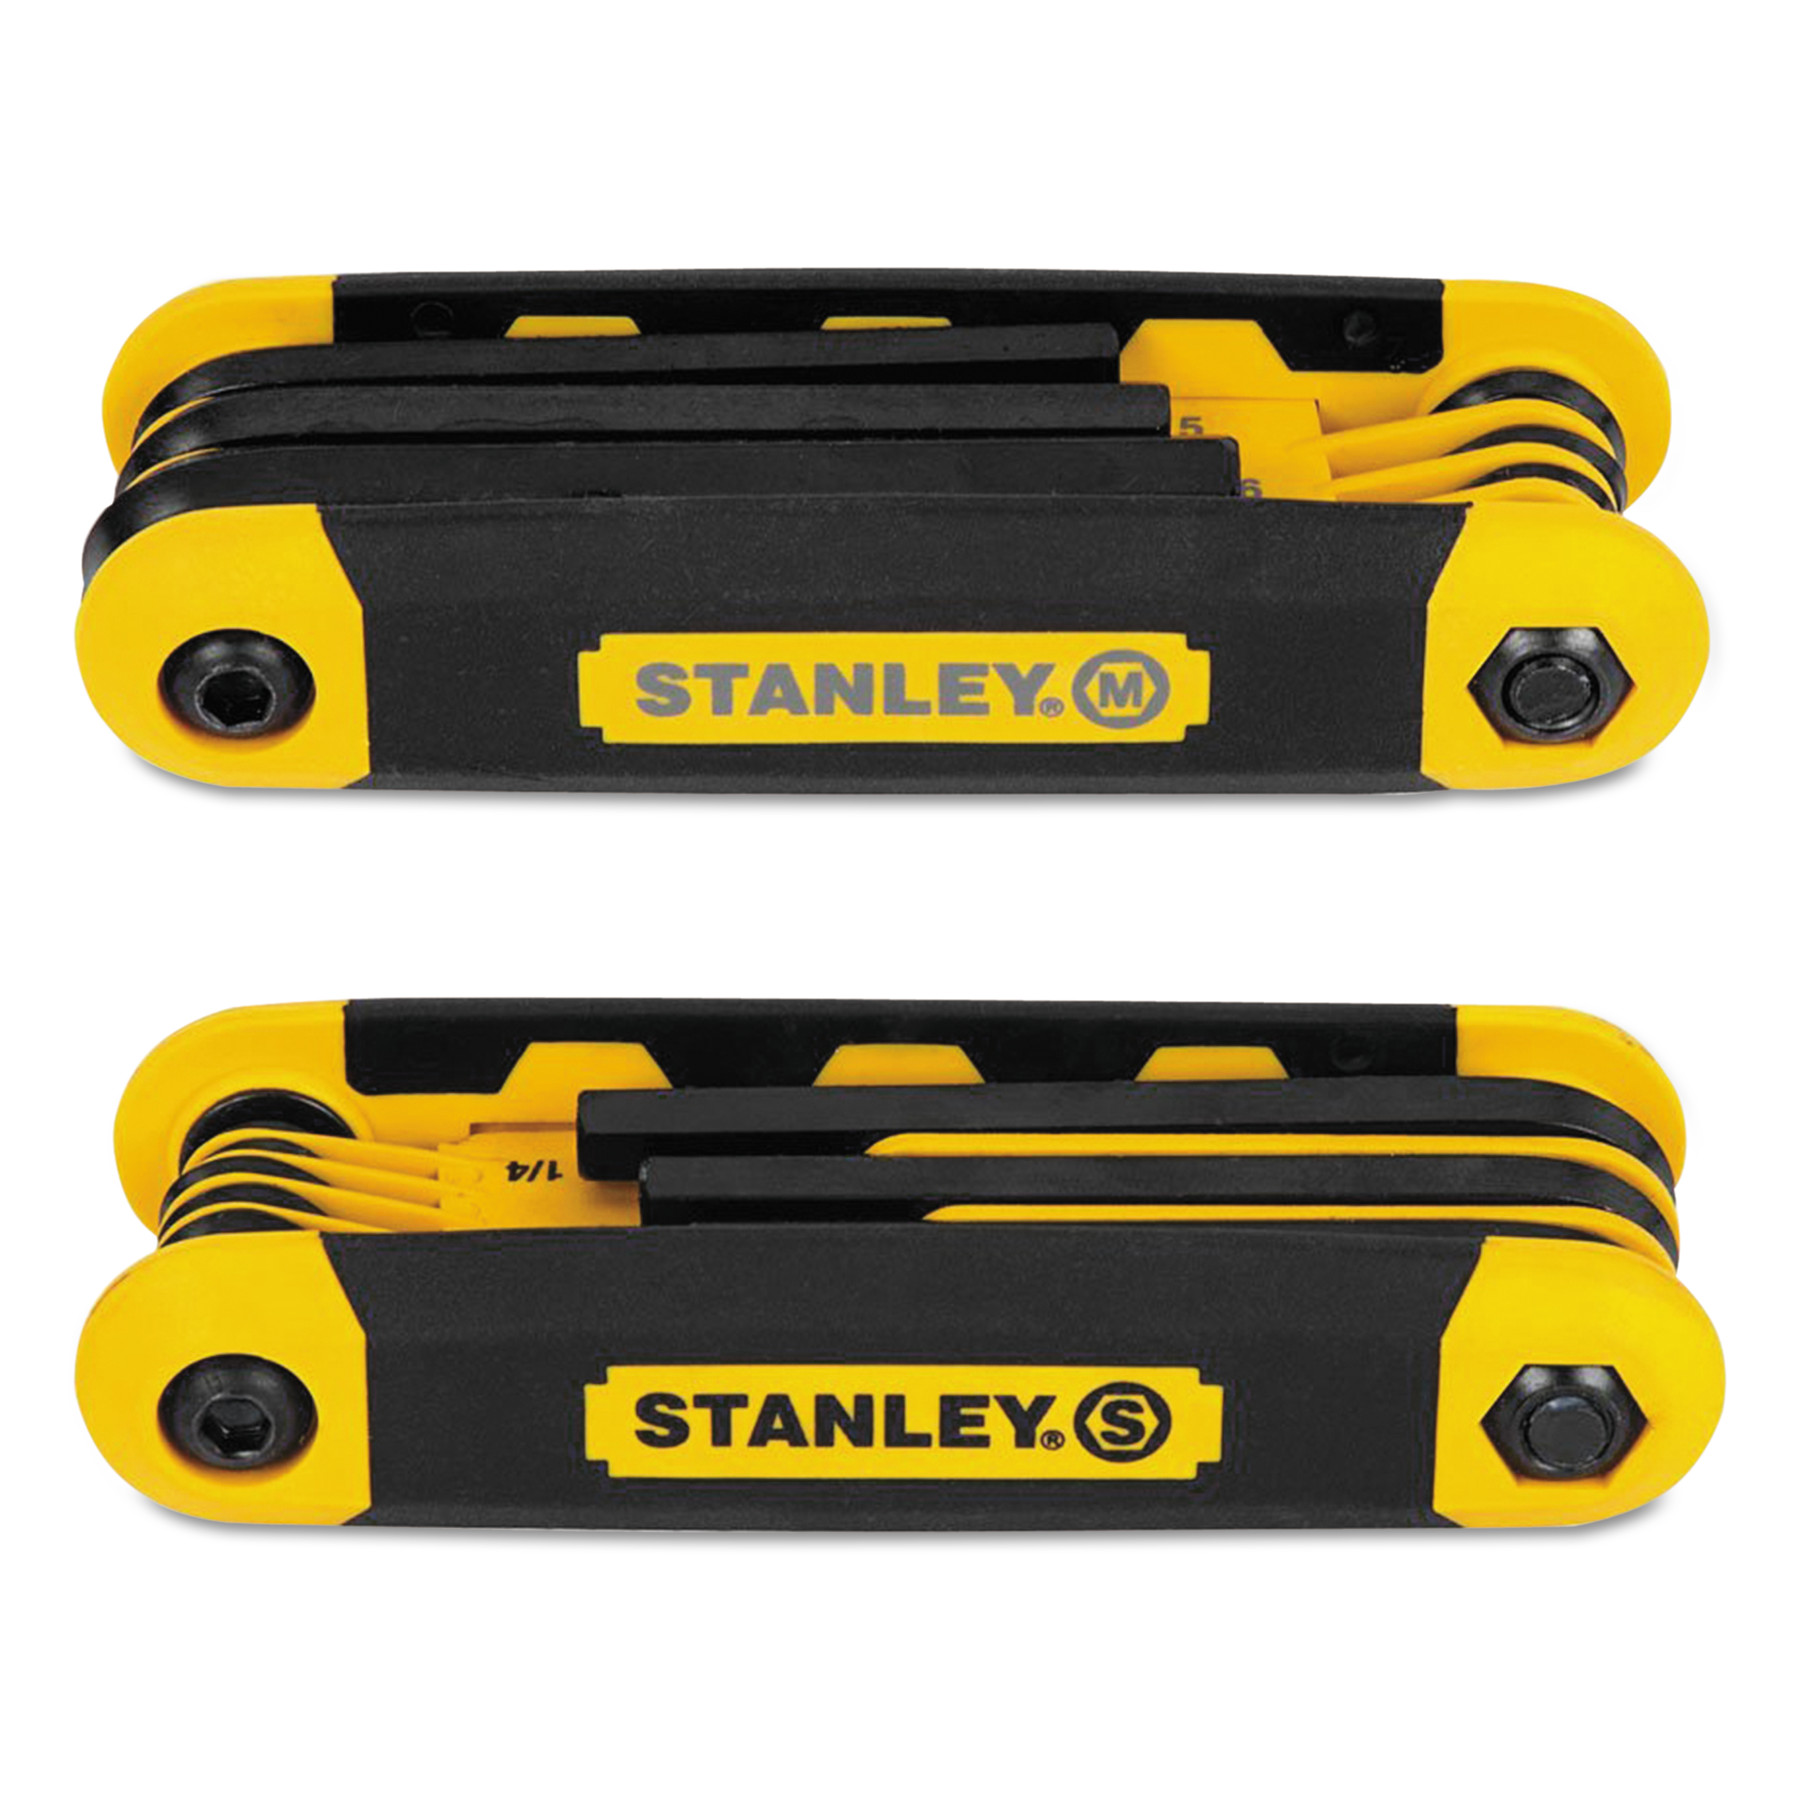 Stanley Folding Metric and SAE Hex Keys, 2/Pk